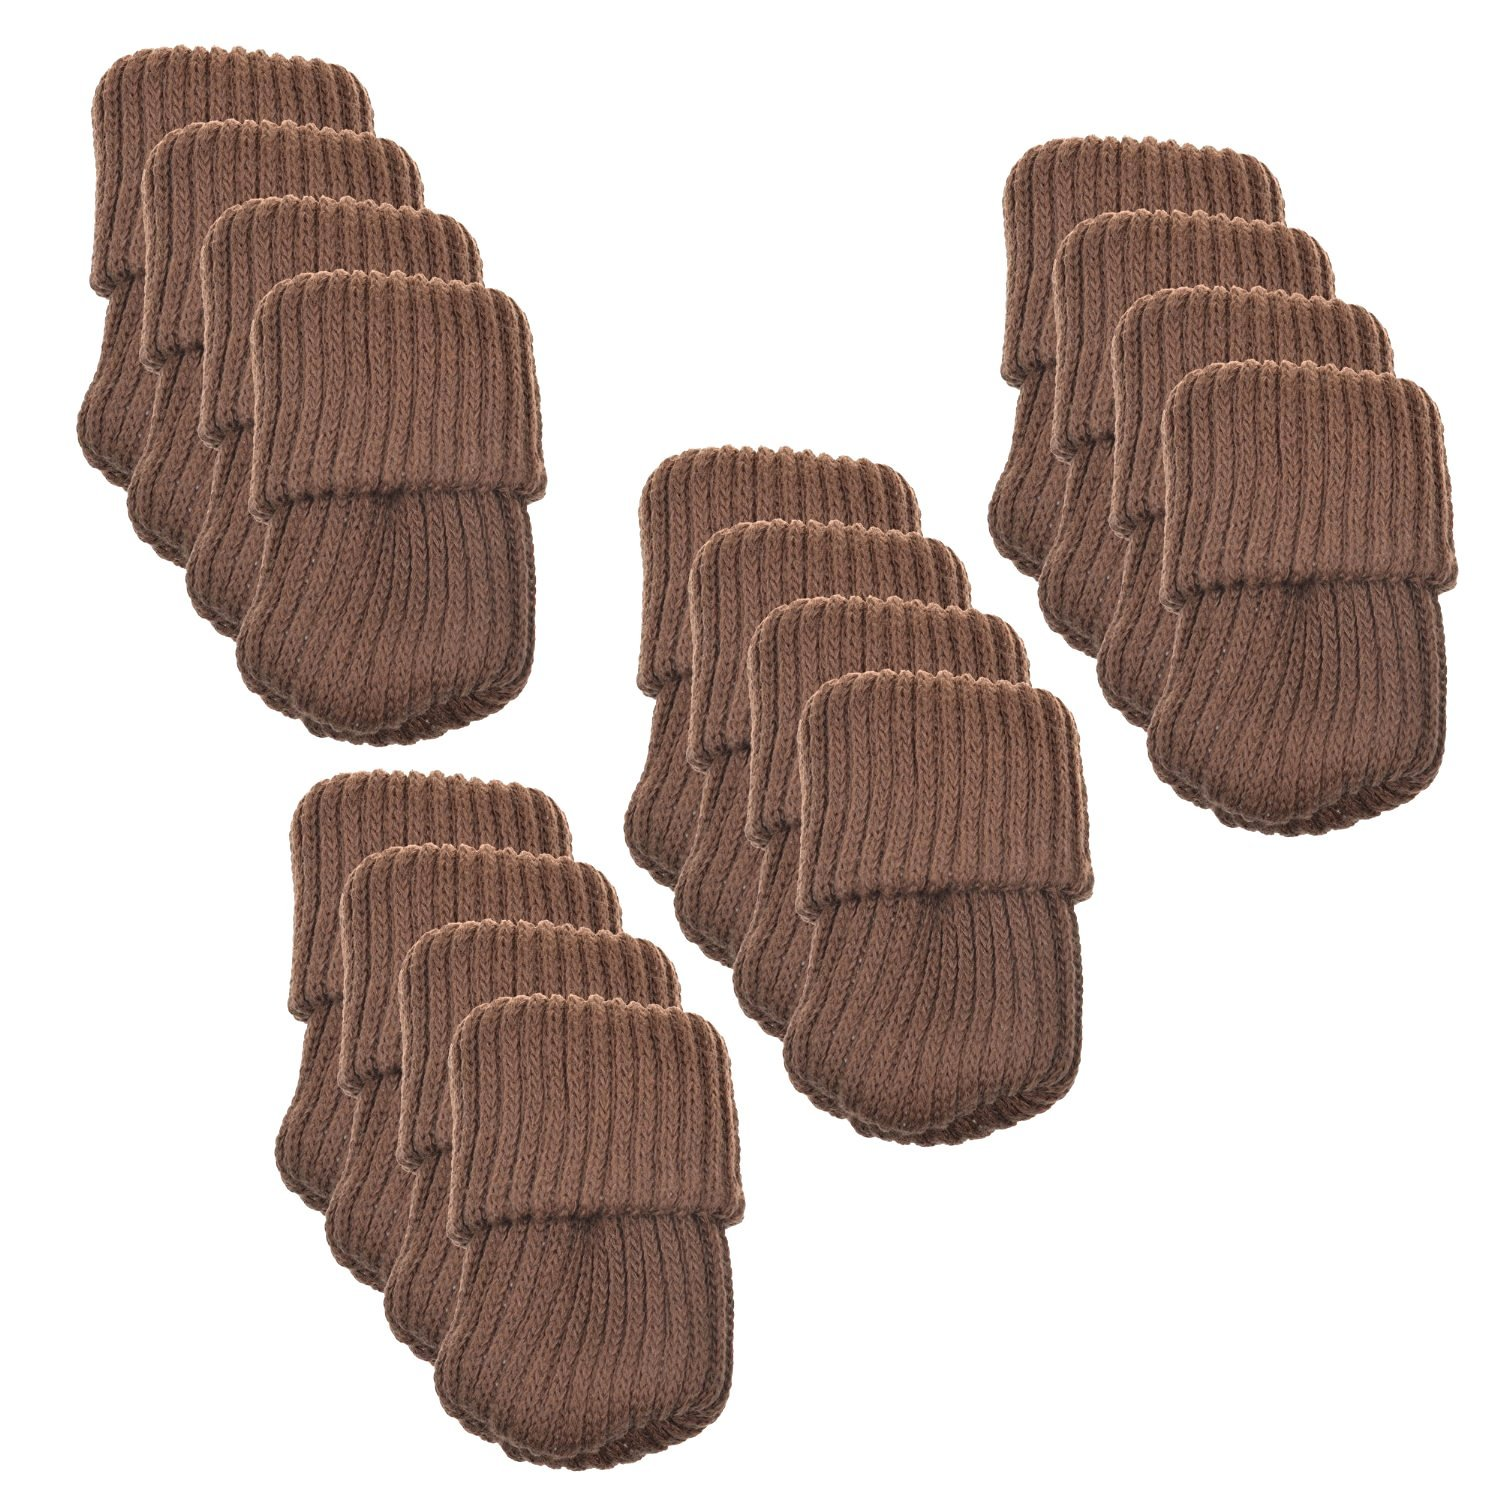 OPOCC Chair Leg Socks Furniture Sliders that Protect Hardwood Floors from Scratches and Reduce Noise Table Socks 16pcs/pack (Brown)